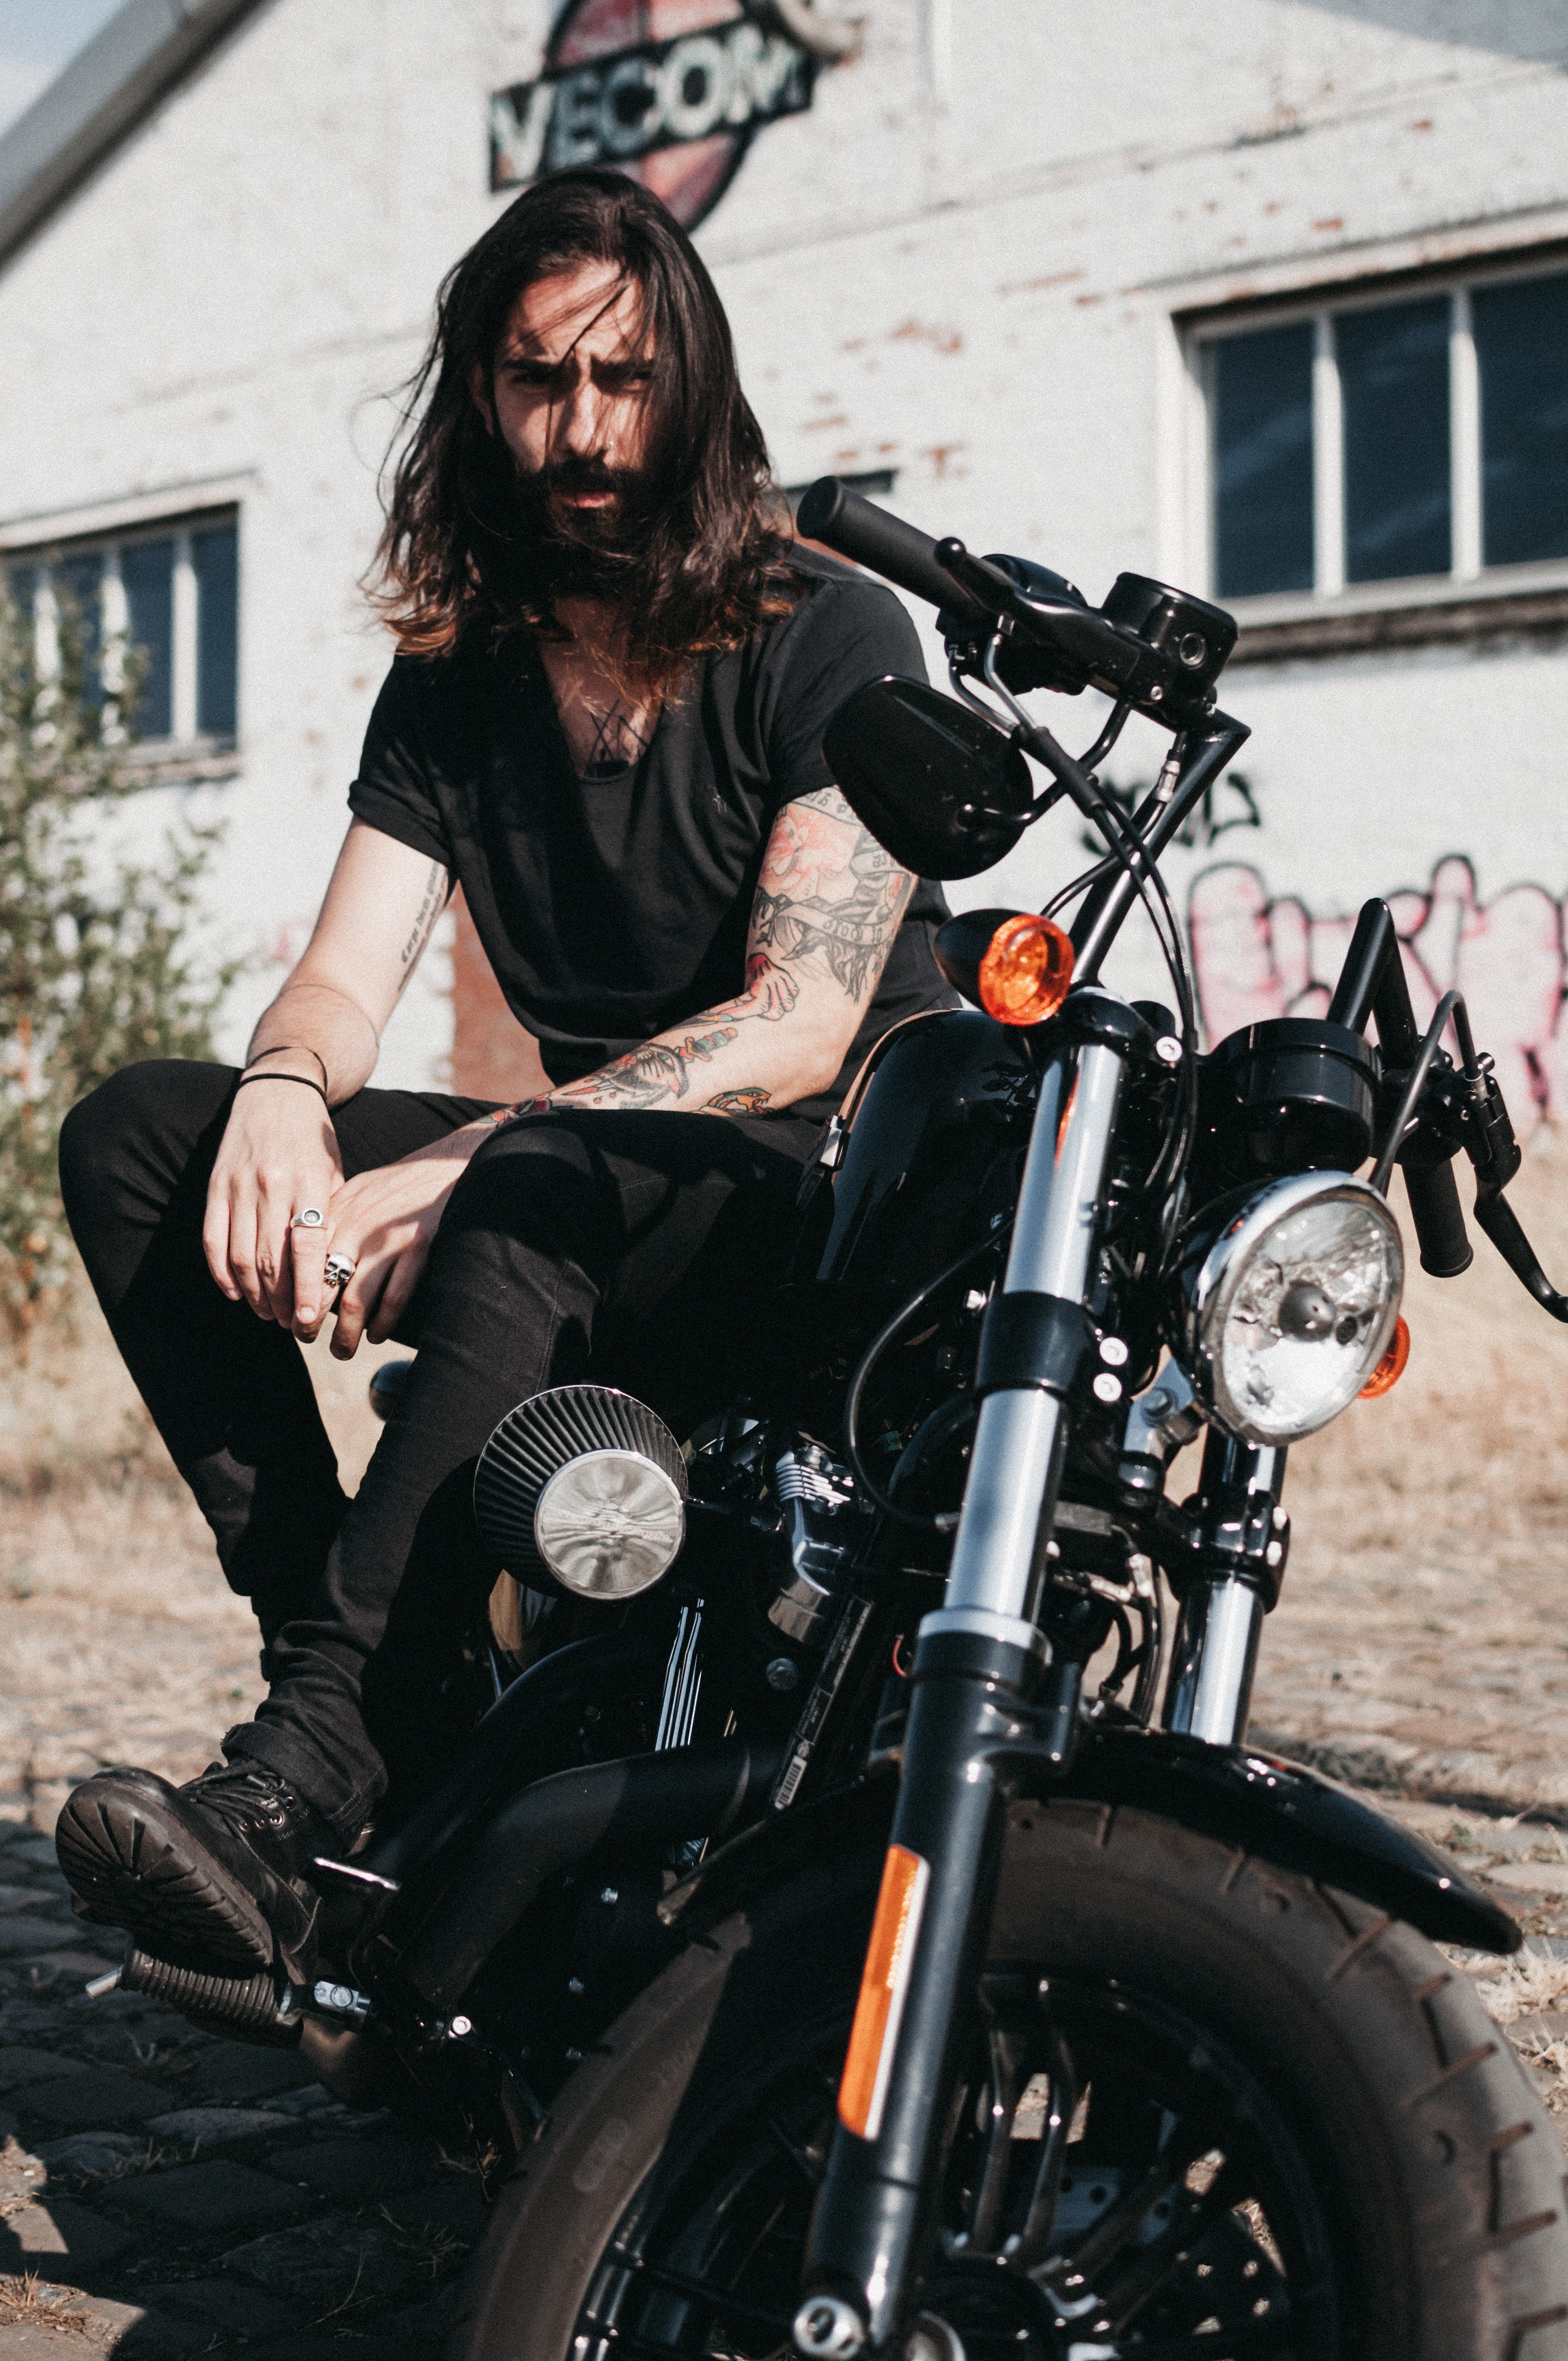 Man with long hair sitting on a motorcycle in Belgium.